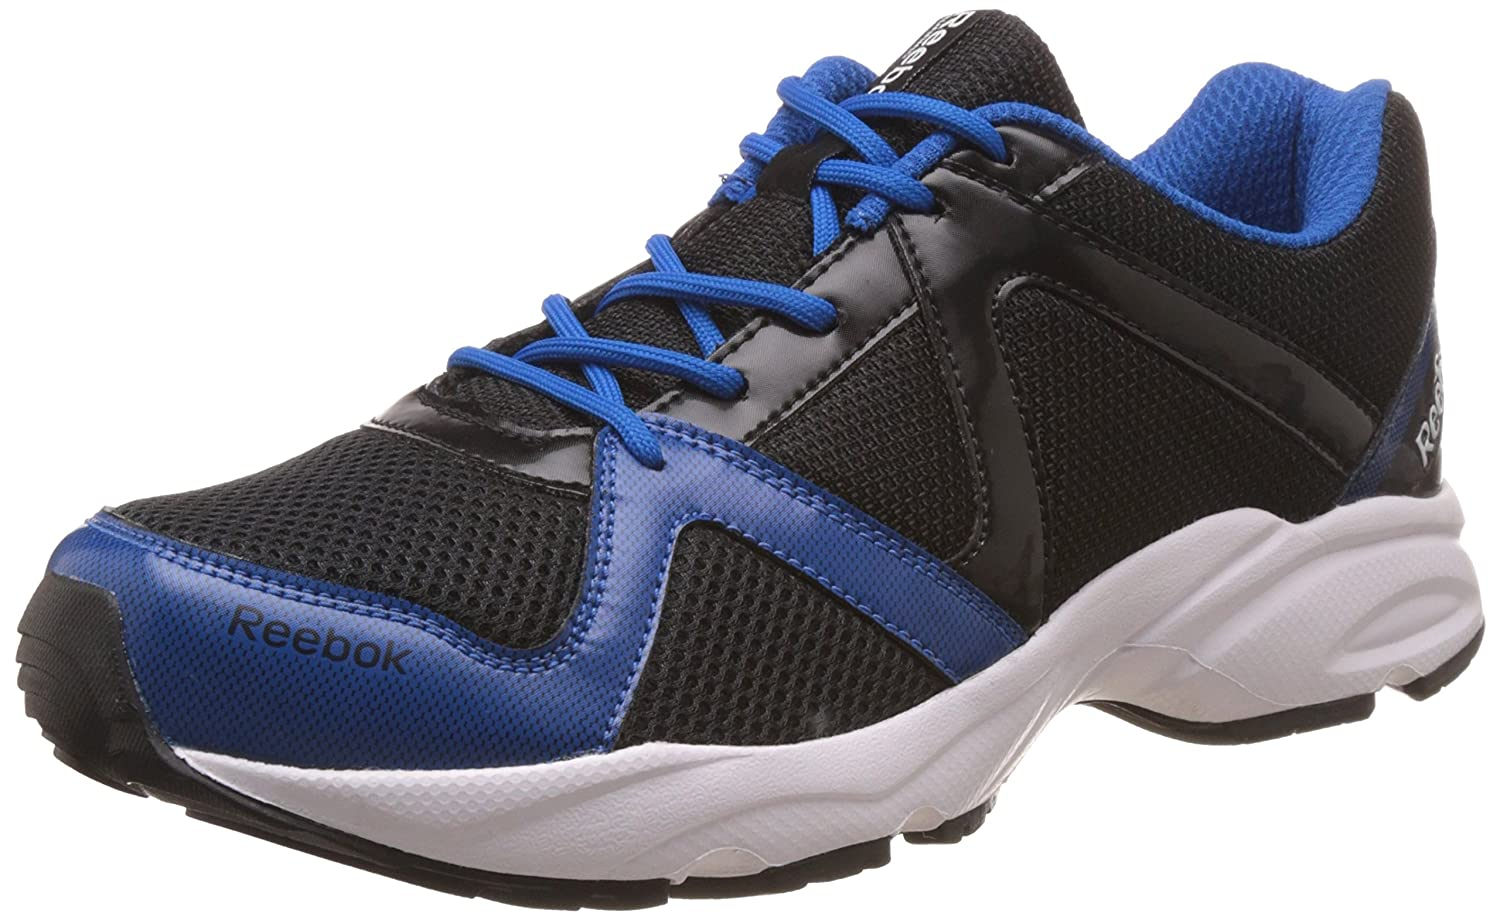 reebok shoes gl 6000 anesthesiologist assistants certification